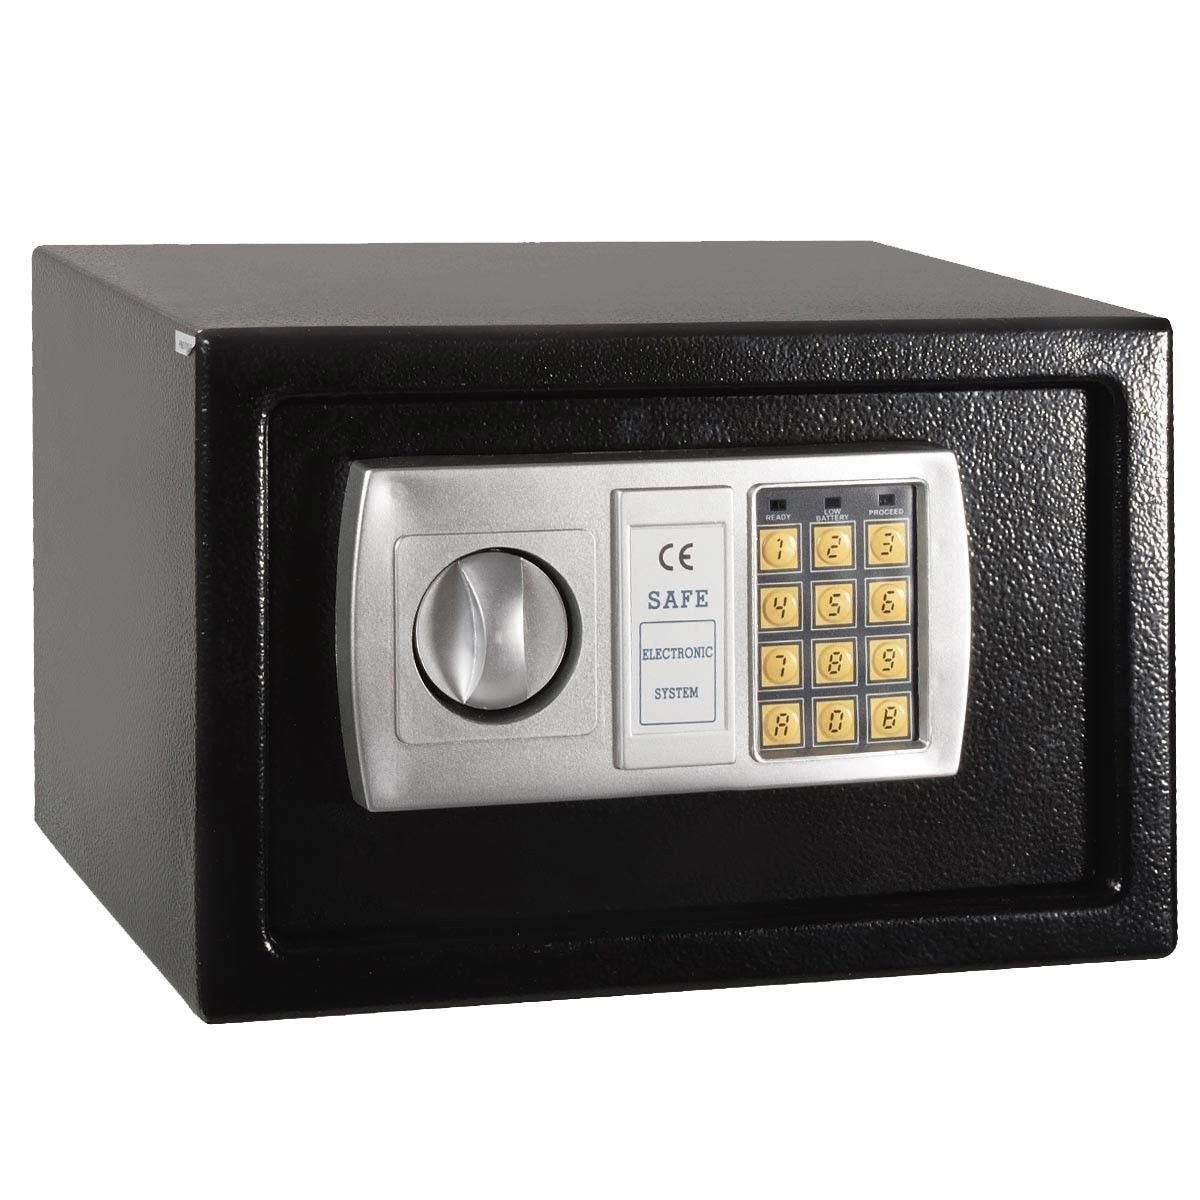 Safstar Digital Electronic Security Safe with Keypad Gun Cash Jewelry Box For Home Hotel Business (12.5'' x 8'' x 8''/Black)